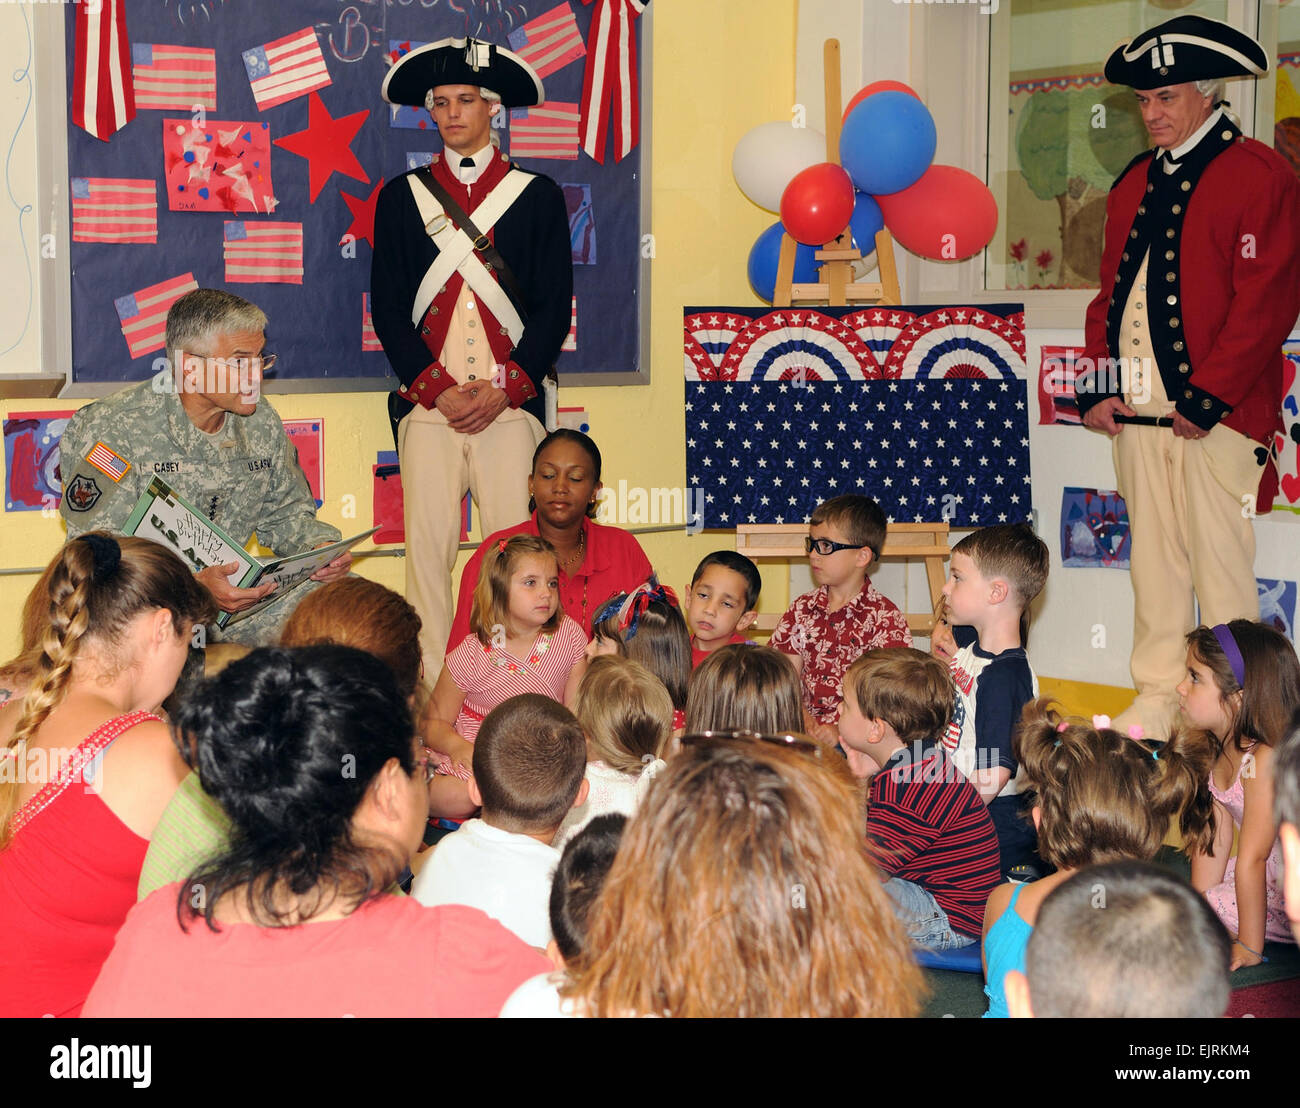 CSA Reads to Kids at Fort Belvoir  J.D. Leipold June 12, 2008  Army Chief of Staff Gen. George W. Casey Jr. paid Stock Photo